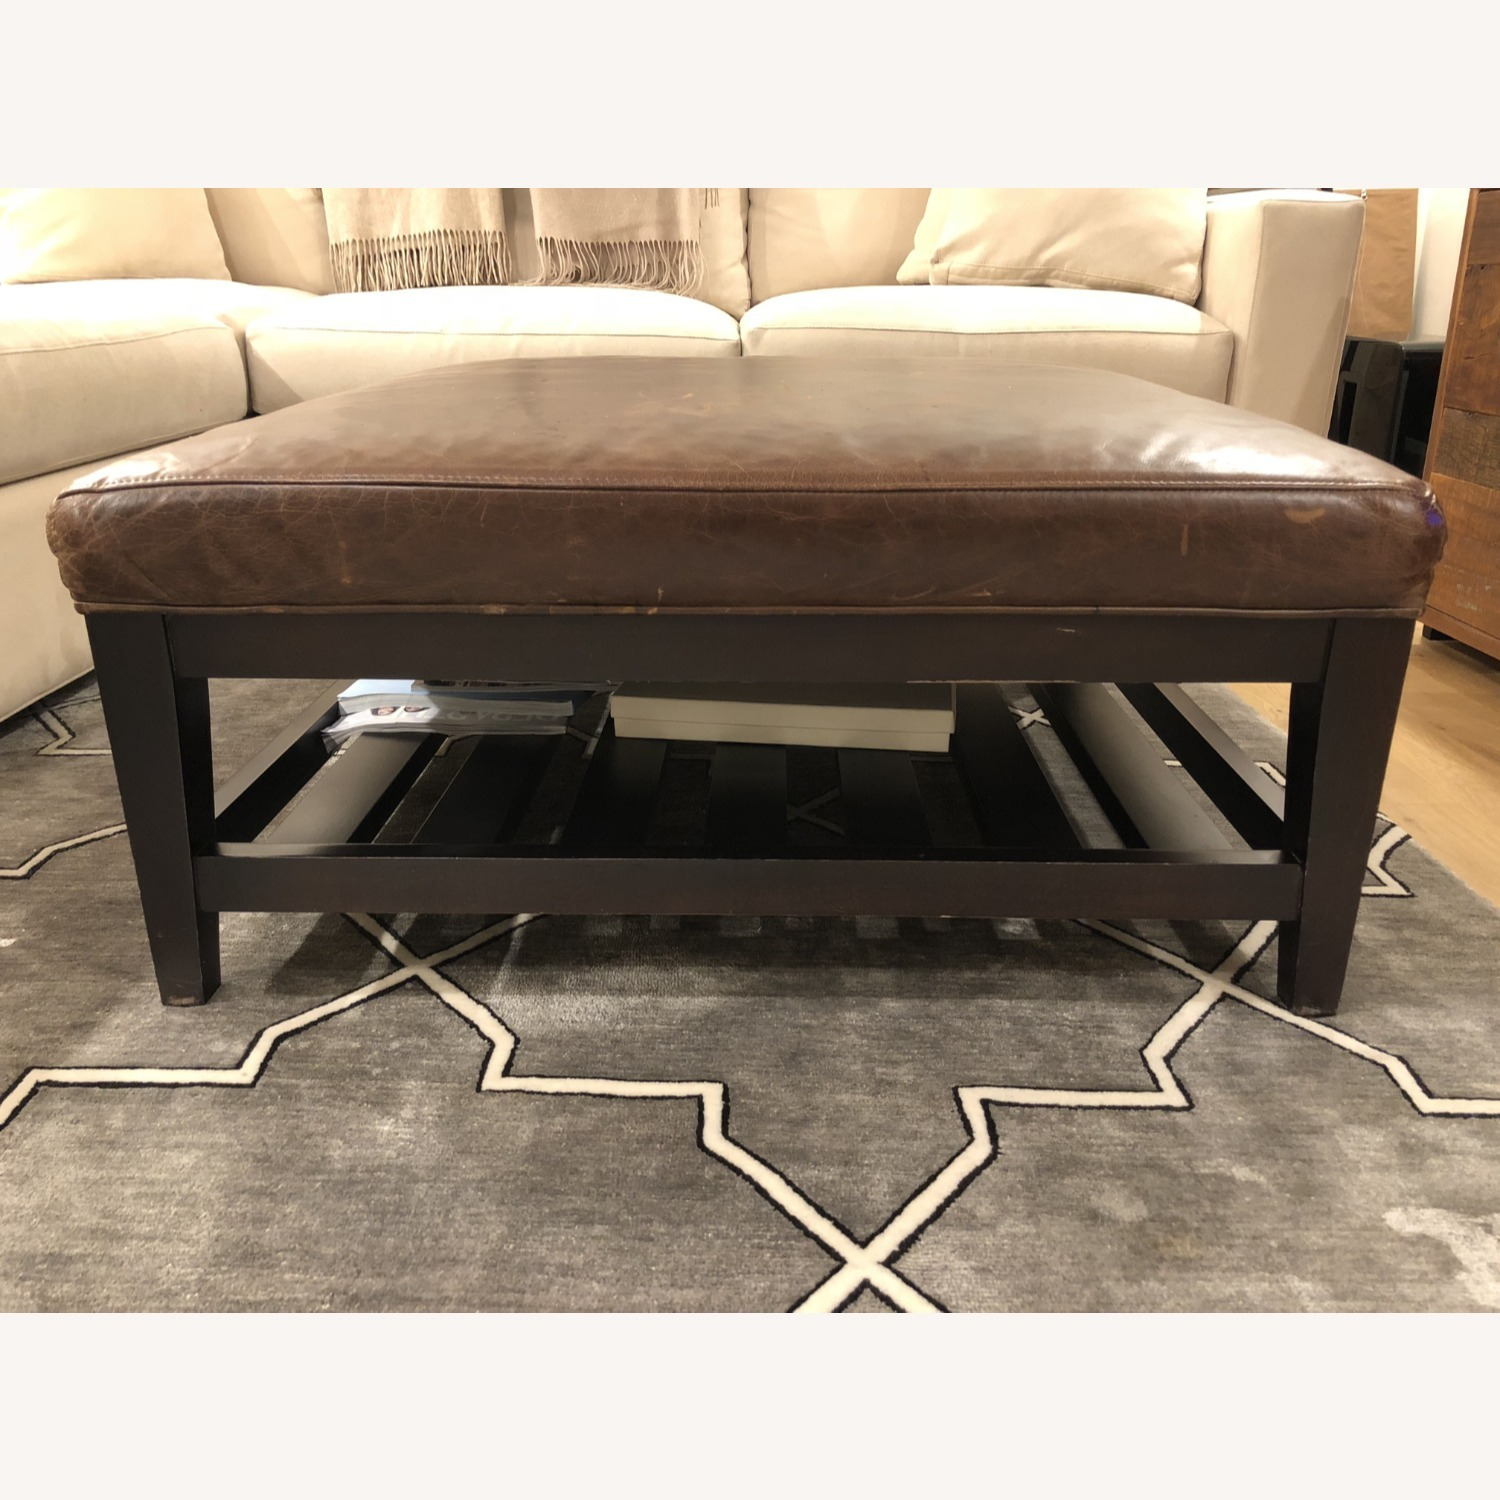 Crate & Barrel Leather & Wood Coffee Table/Ottoman - image-5